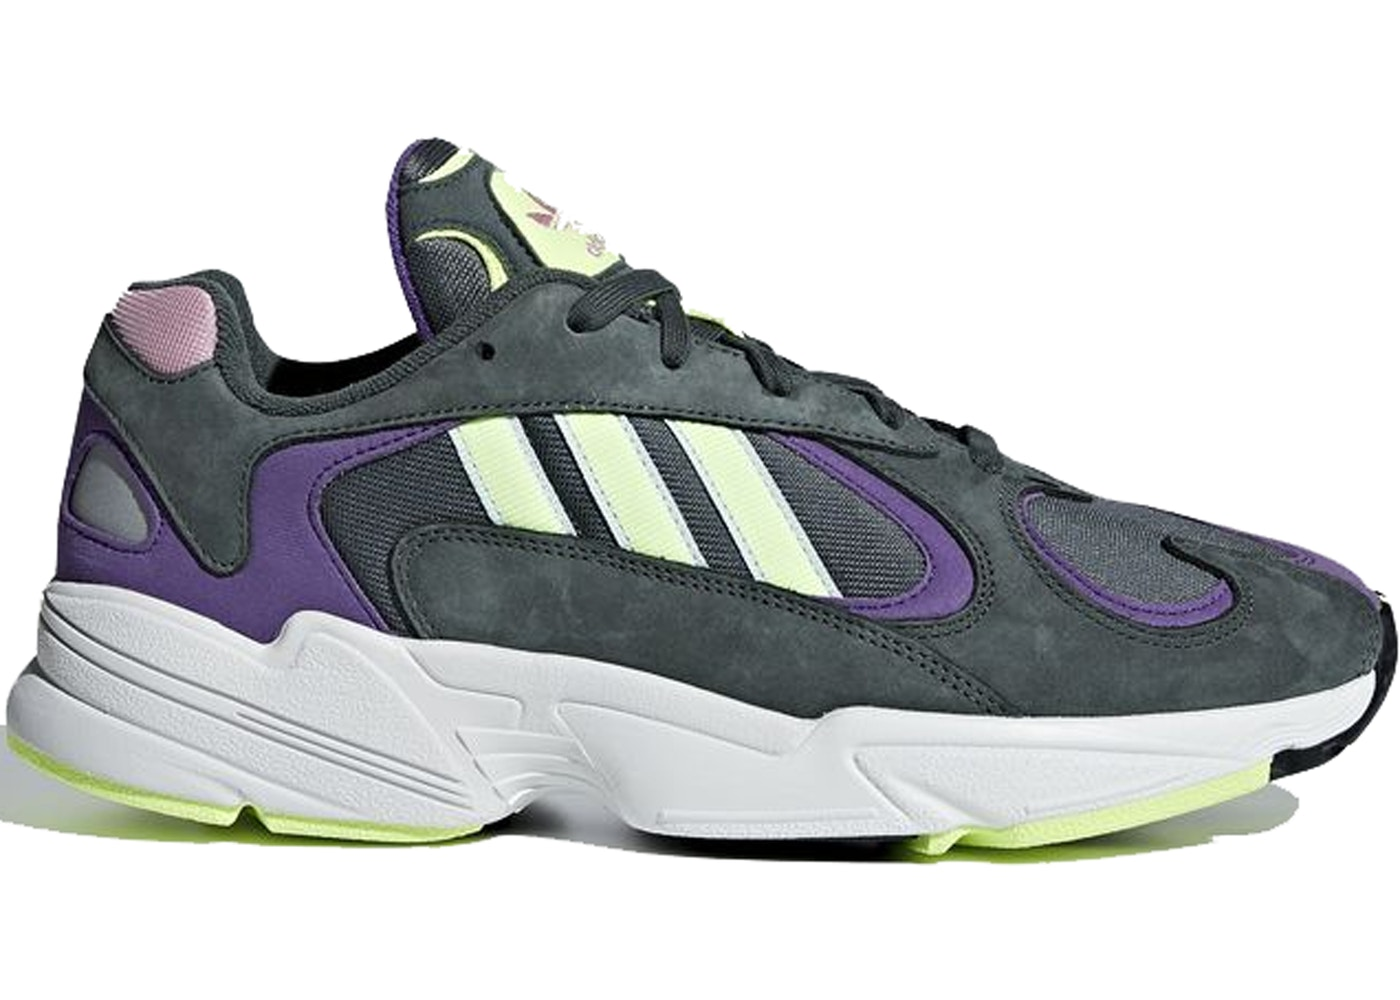 8bd3df5ccb8 adidas Yung-1 Legend Ivy Hi Res Yellow - BD7655